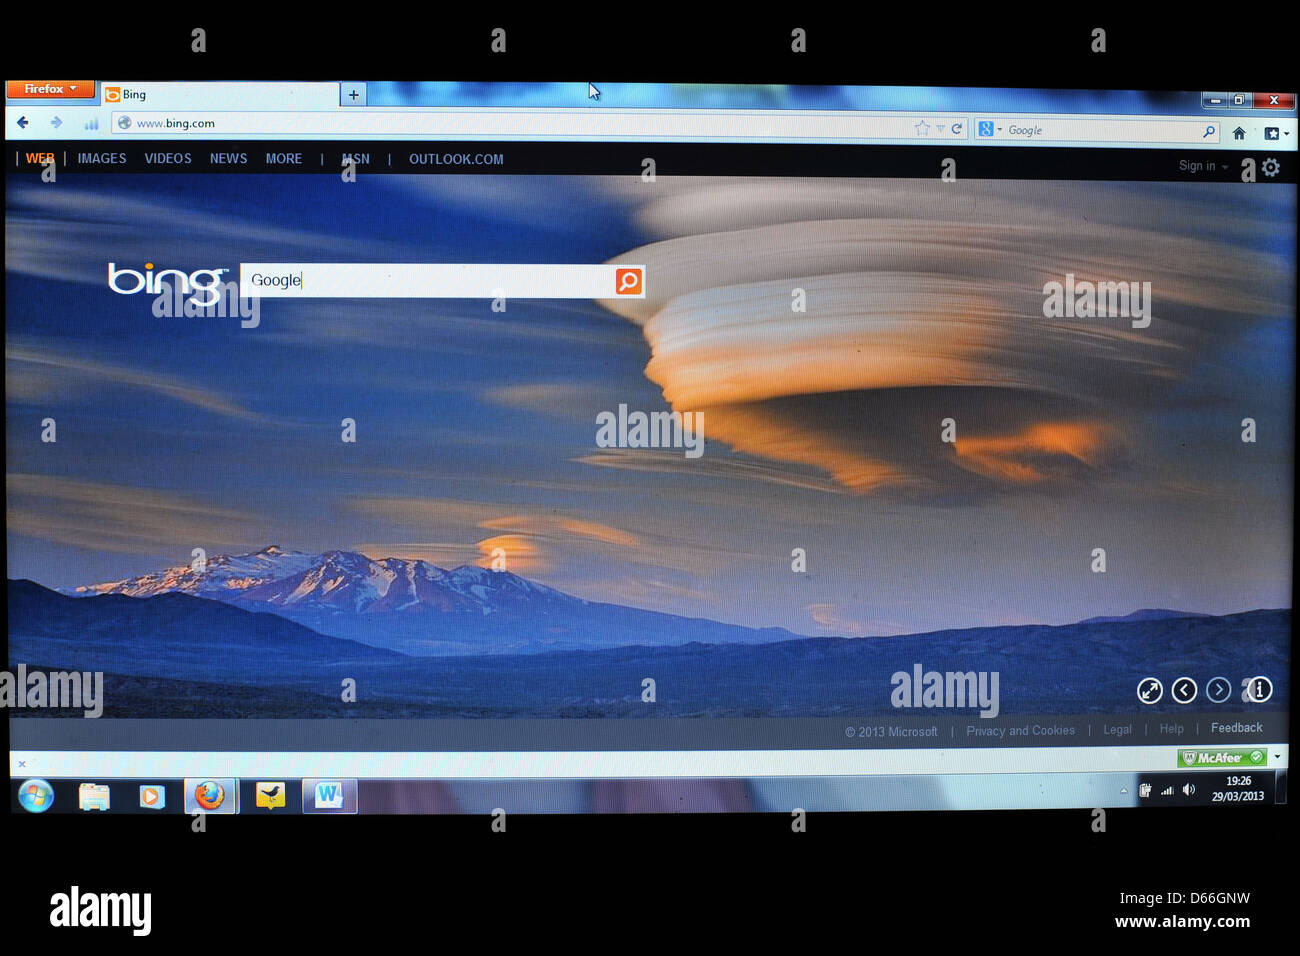 Image of a computer screen showing the Bing search engine homepage. - Stock Image